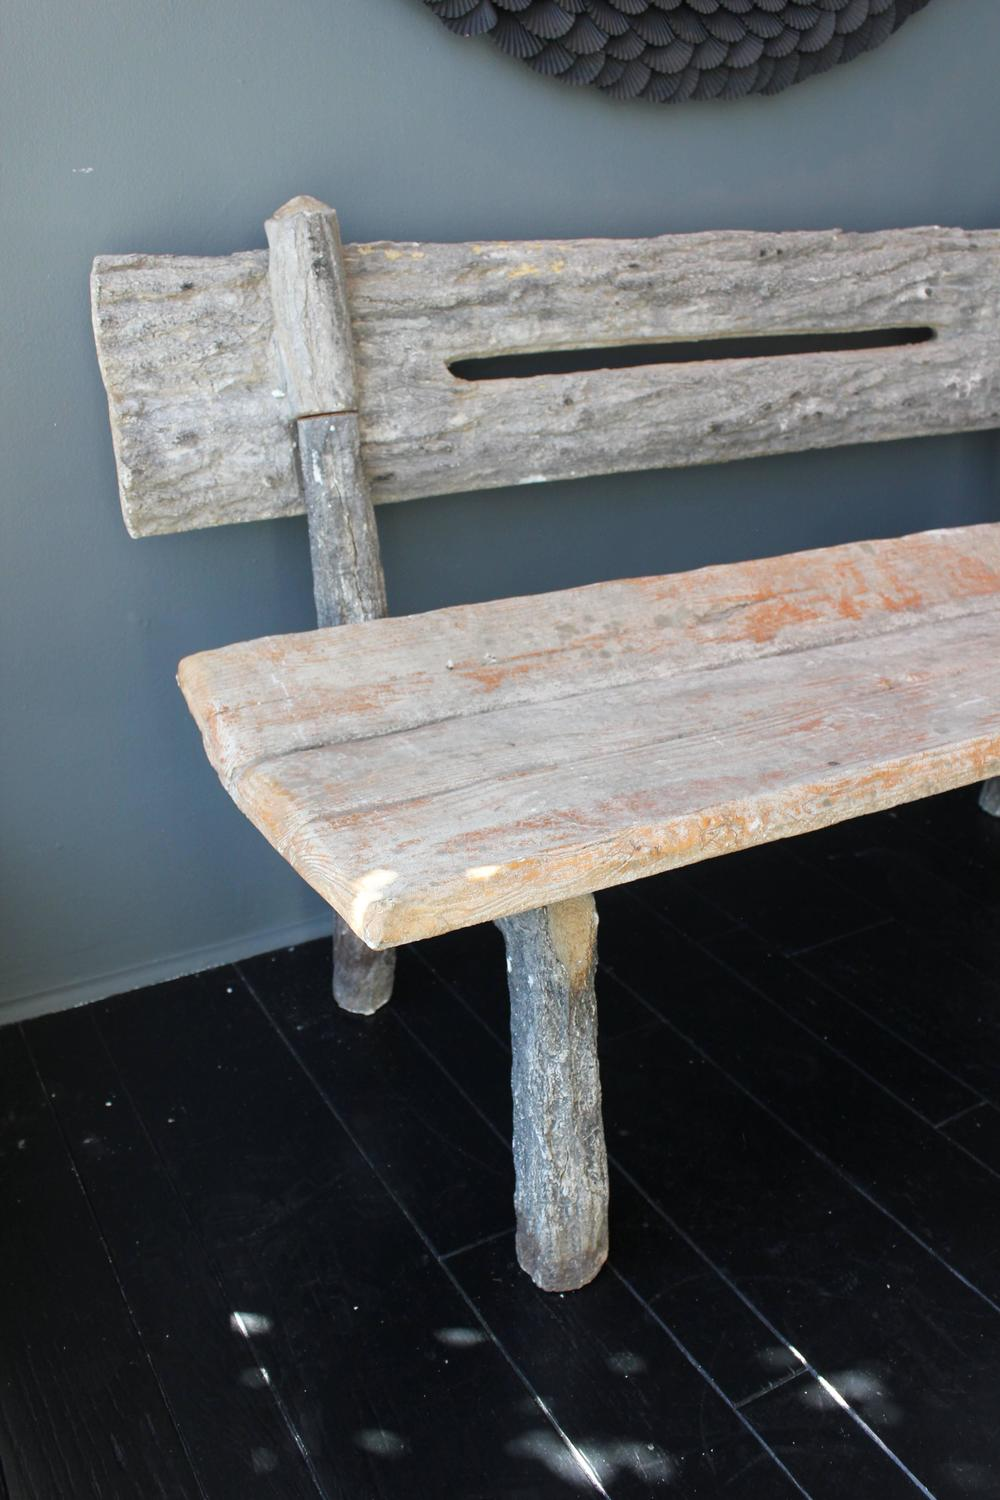 Concrete Bench For Sale 28 Images Concrete Table And Bench Set For Urgent Sale Yellowwood